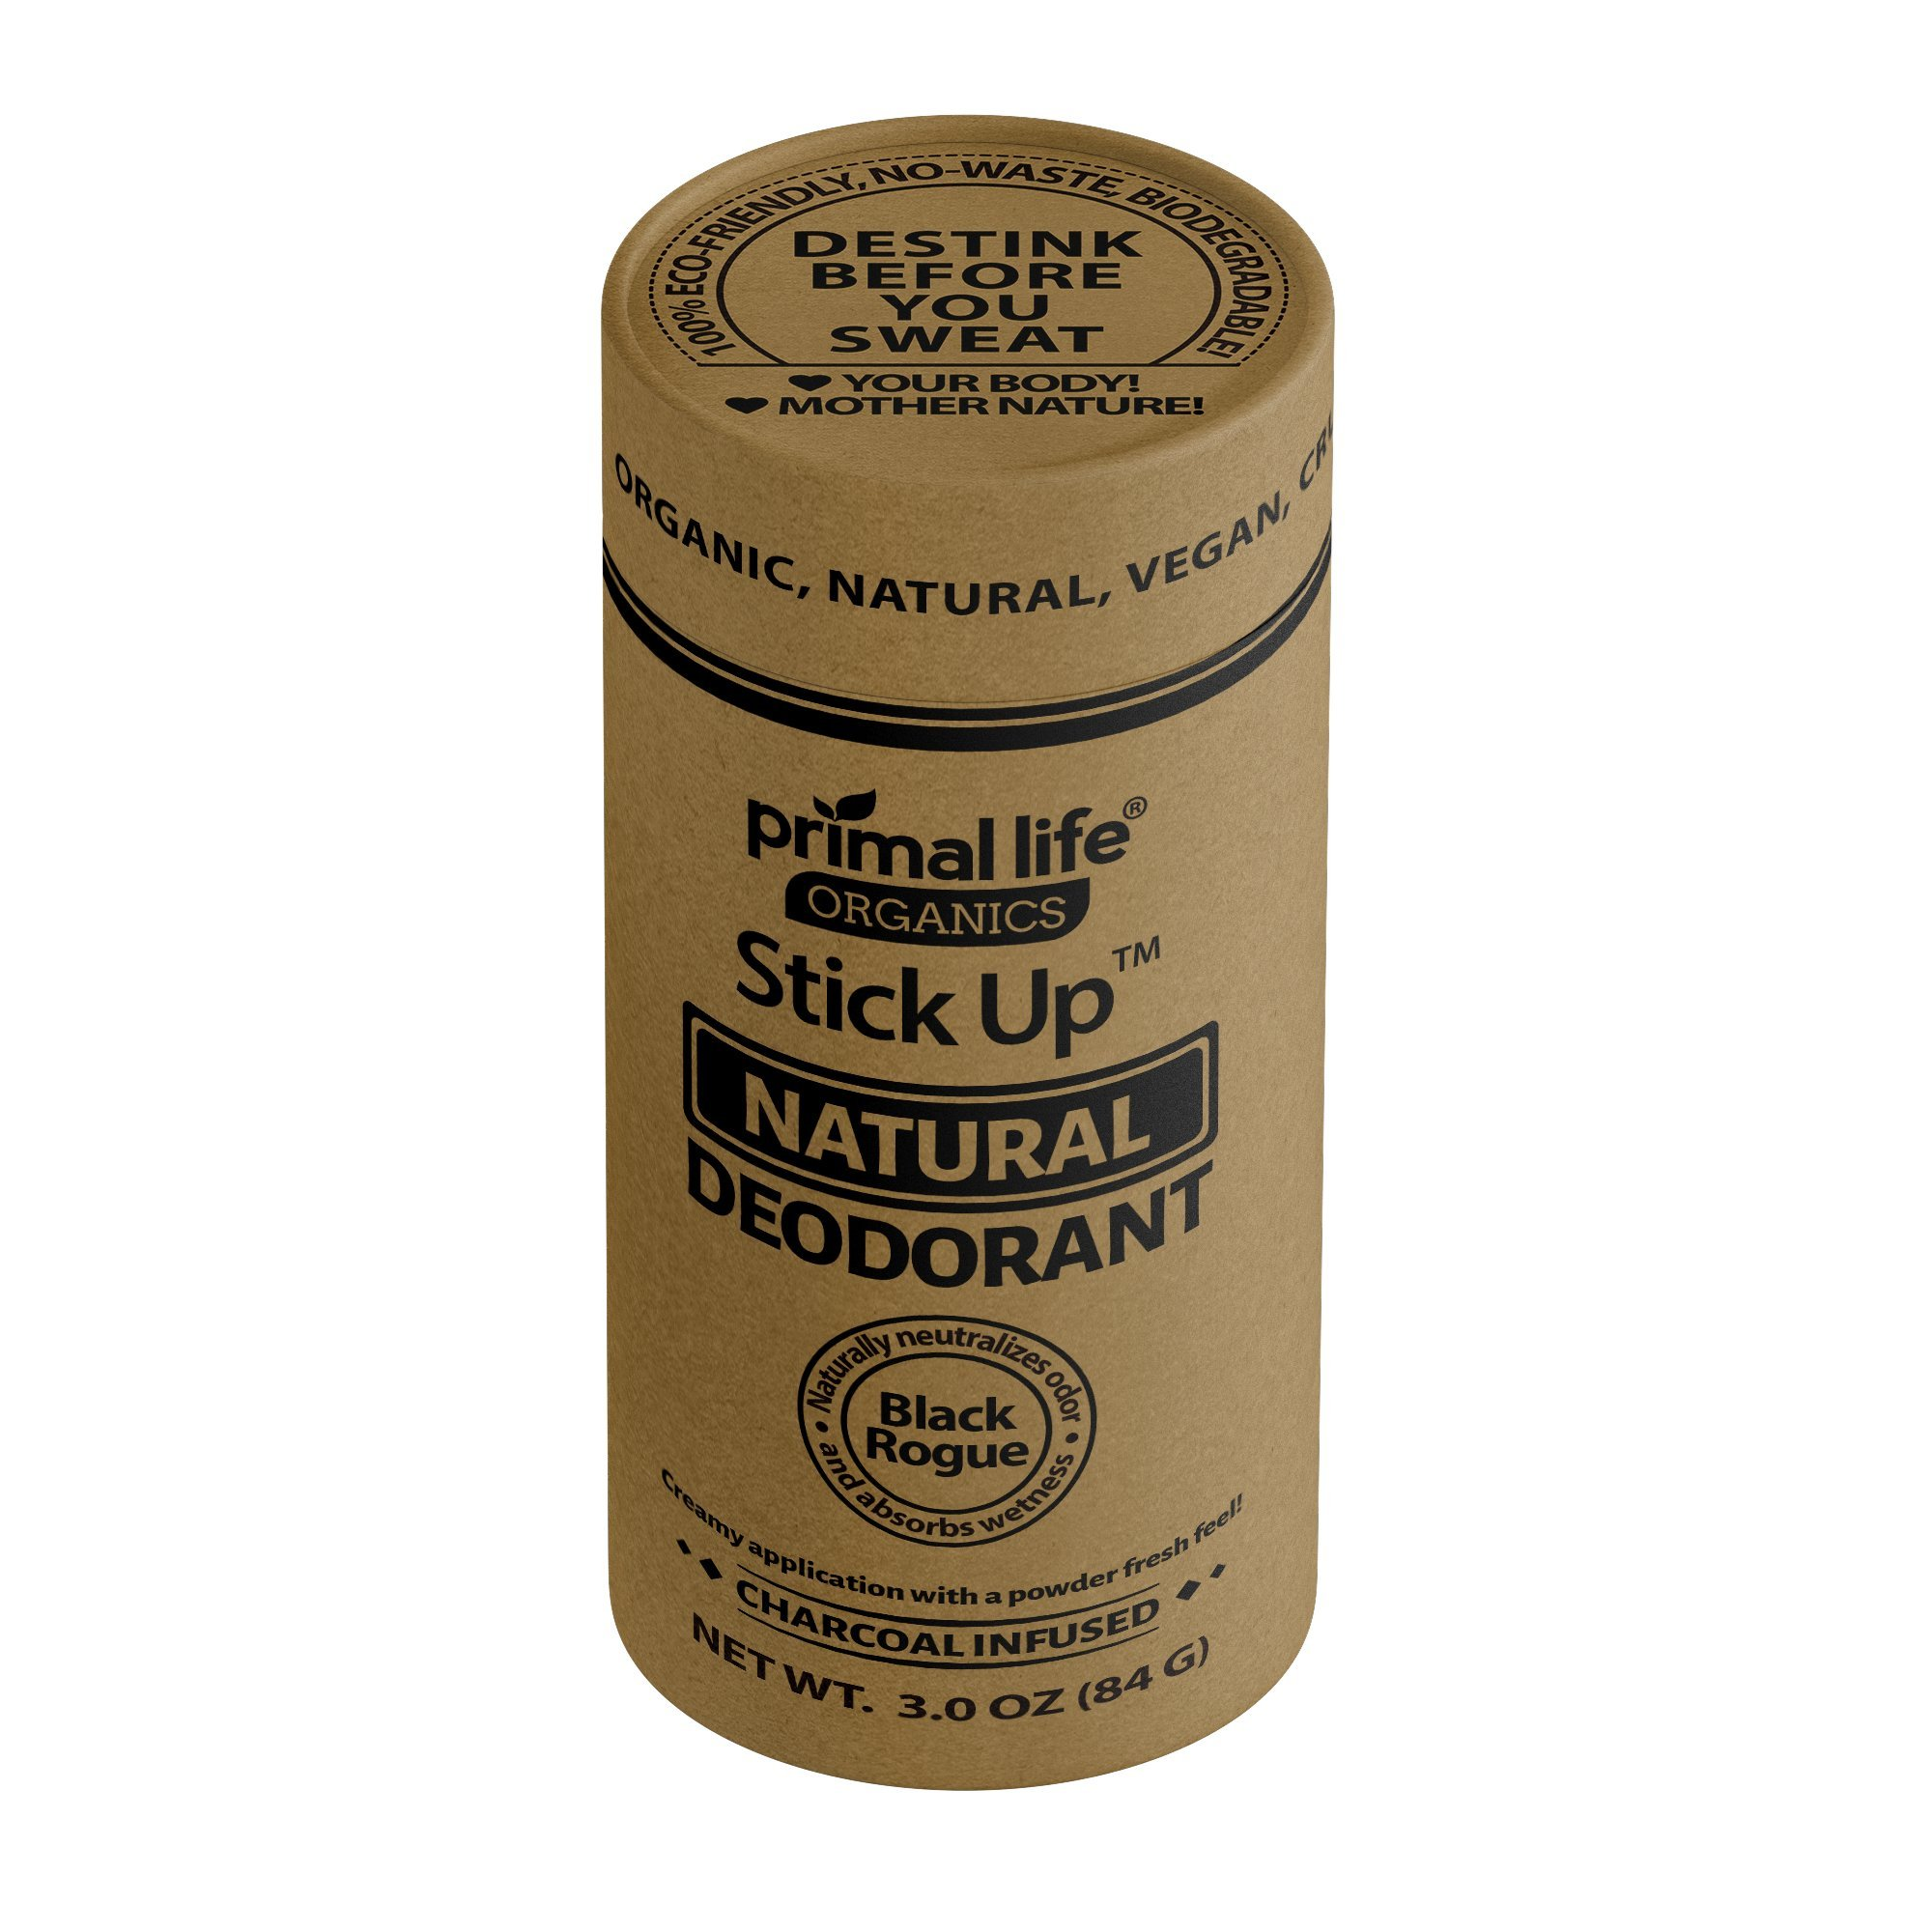 Primal Life Organics | Stick Up Natural Vegan Deodorant | Charcoal Infused and Made with Magnesium and Hemp Seed Oil | No Gluten, Baking Soda or Aluminum | 3 ounces | Black Rogue